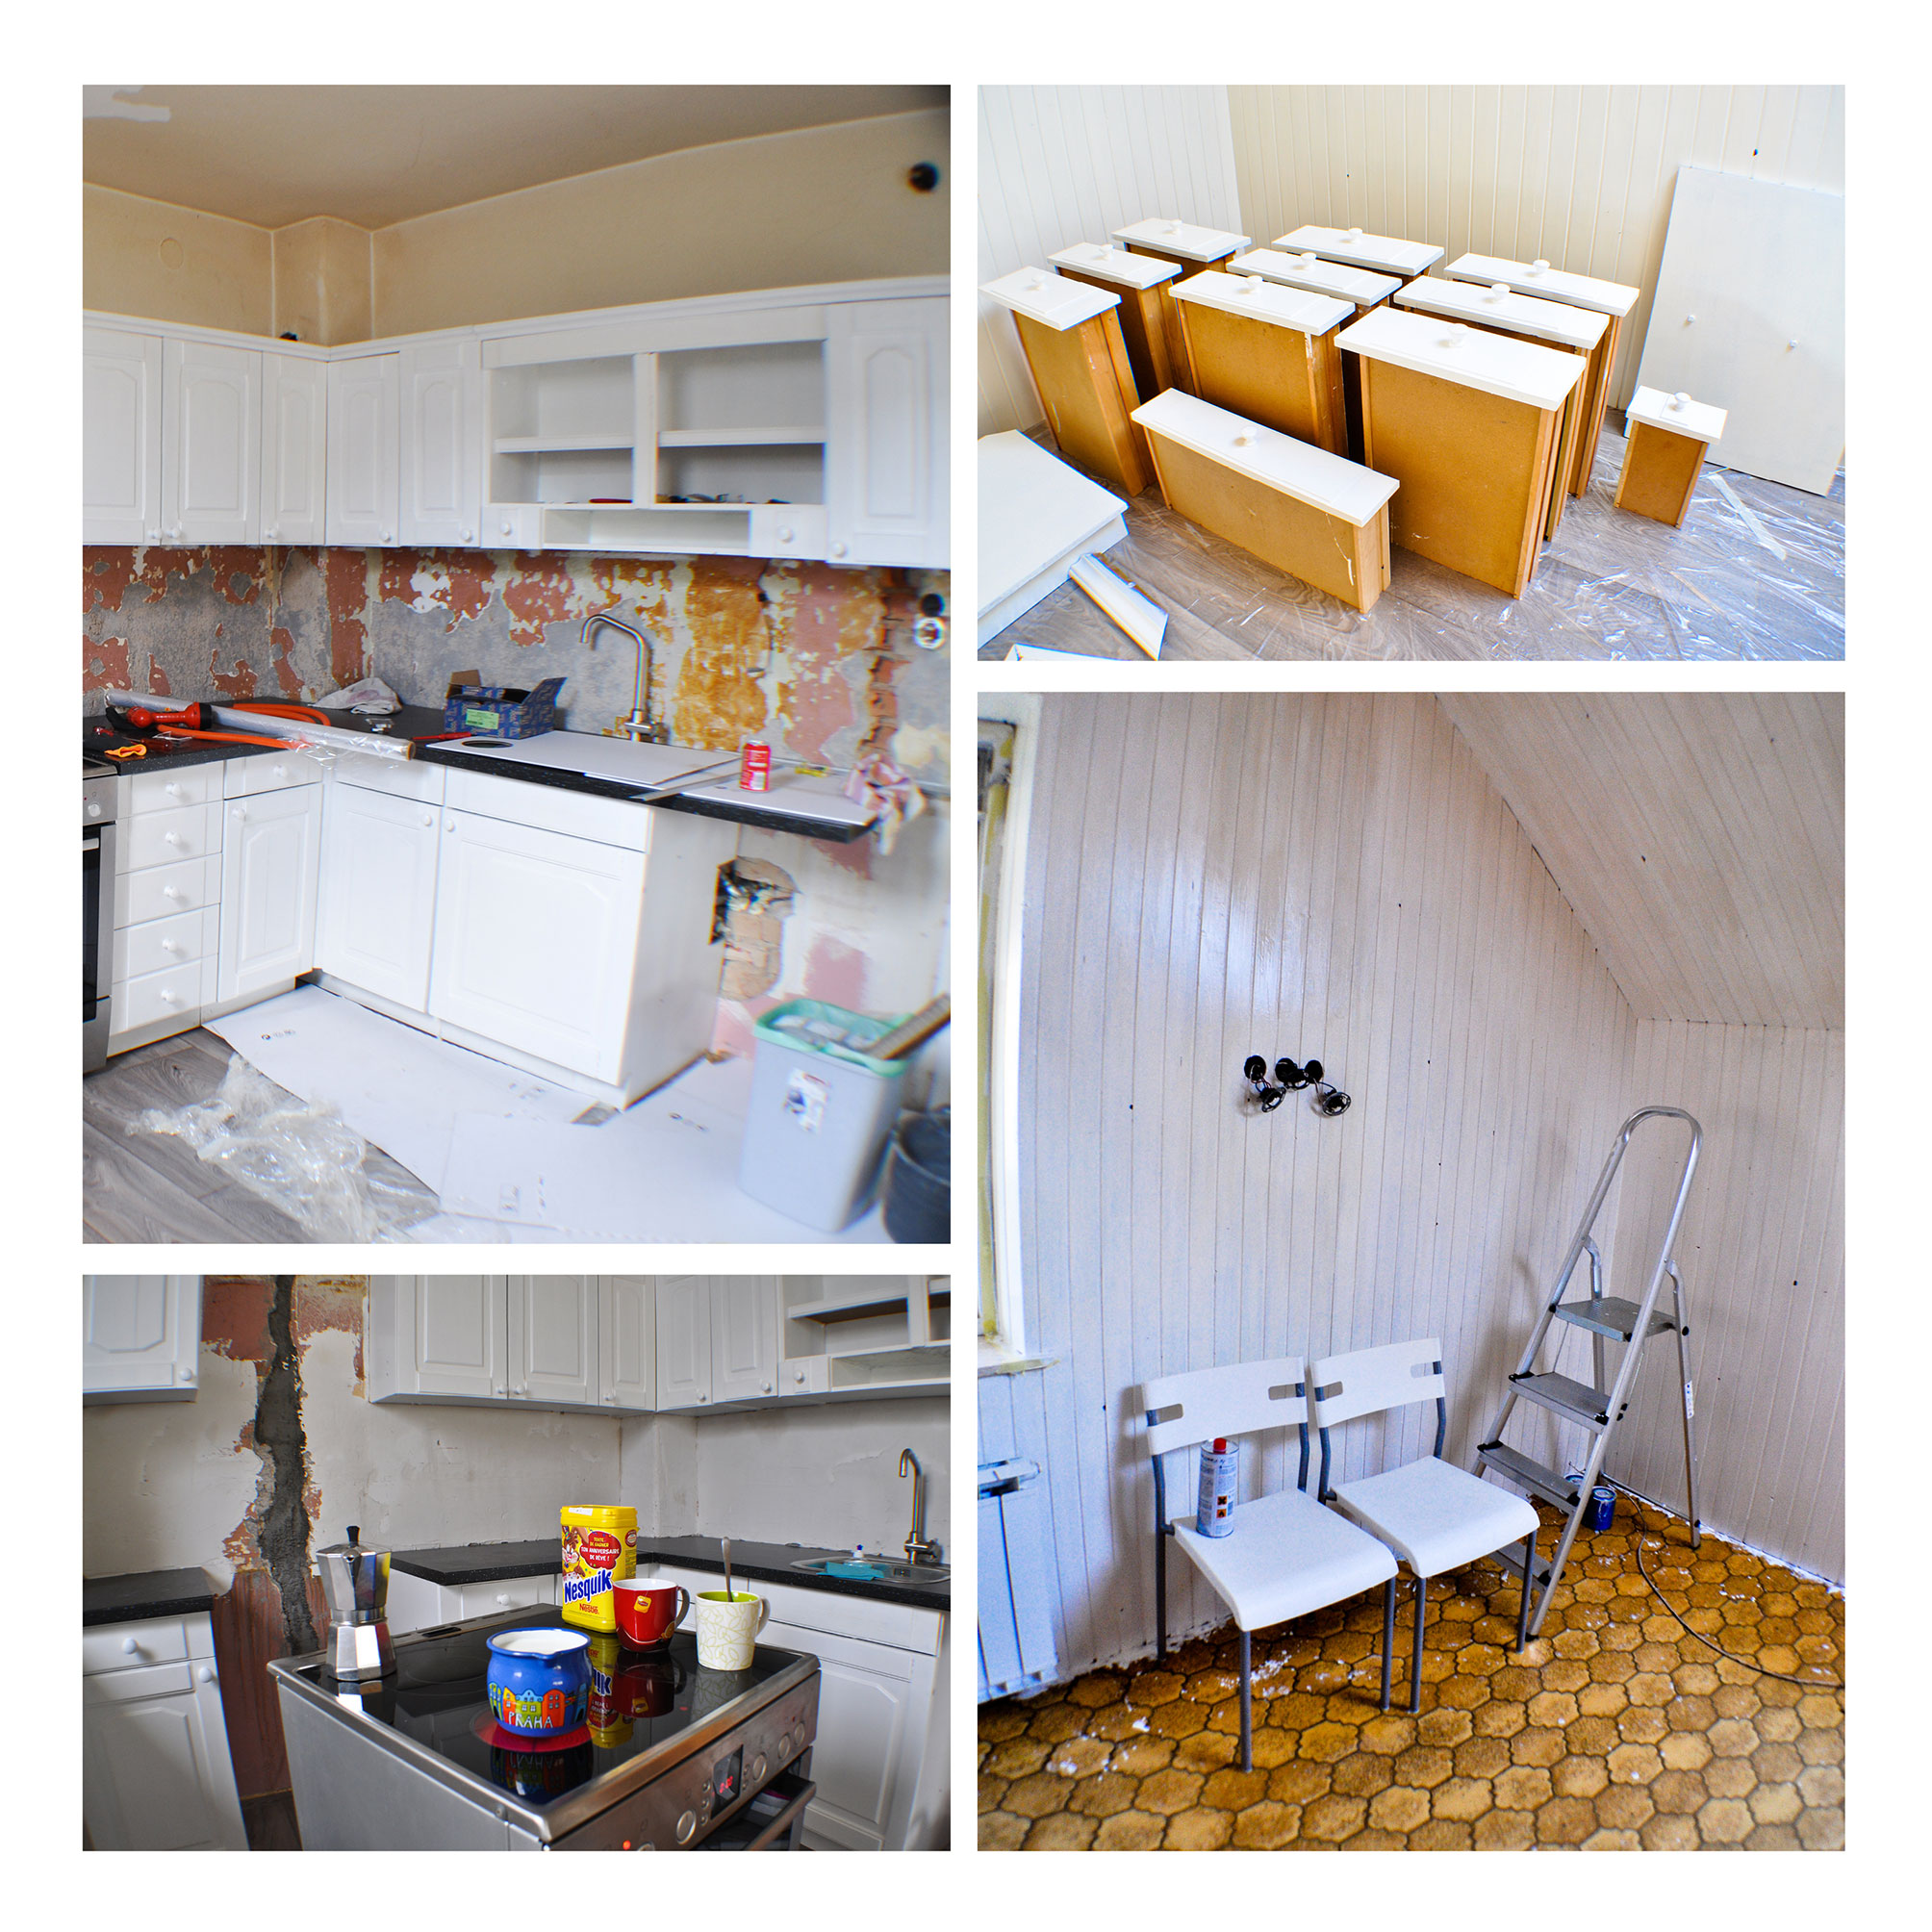 4_kuhinja_before&after_renovation